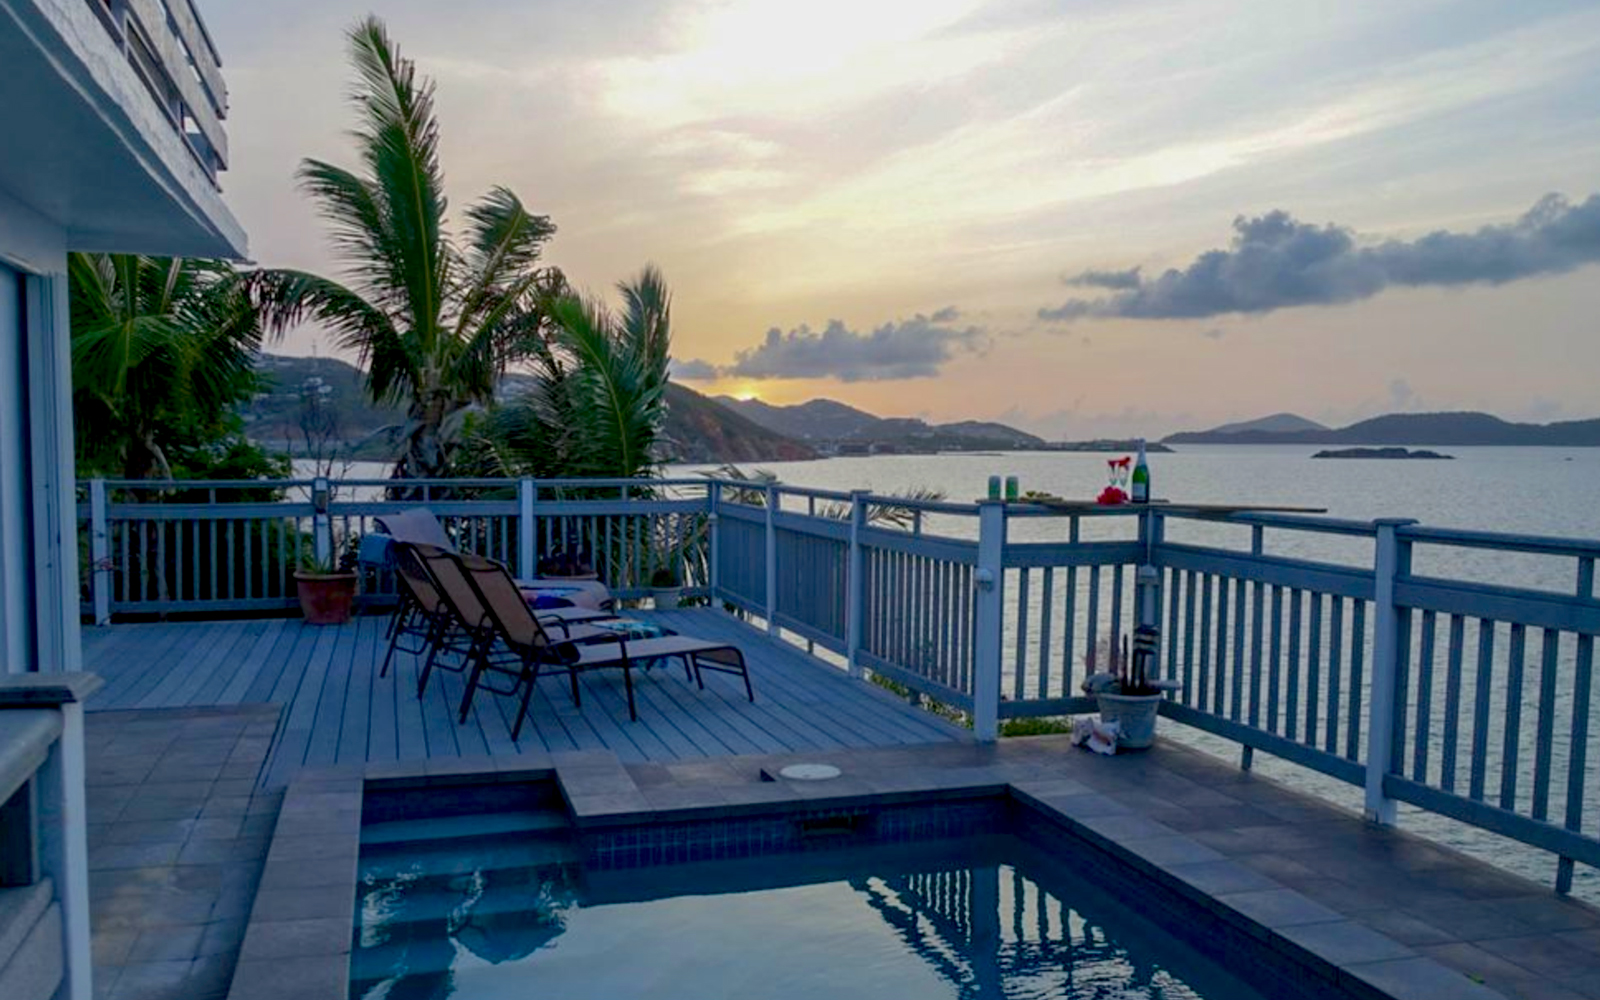 Casa Azure luxury villa rental in St Thomas, available from ThirdHome